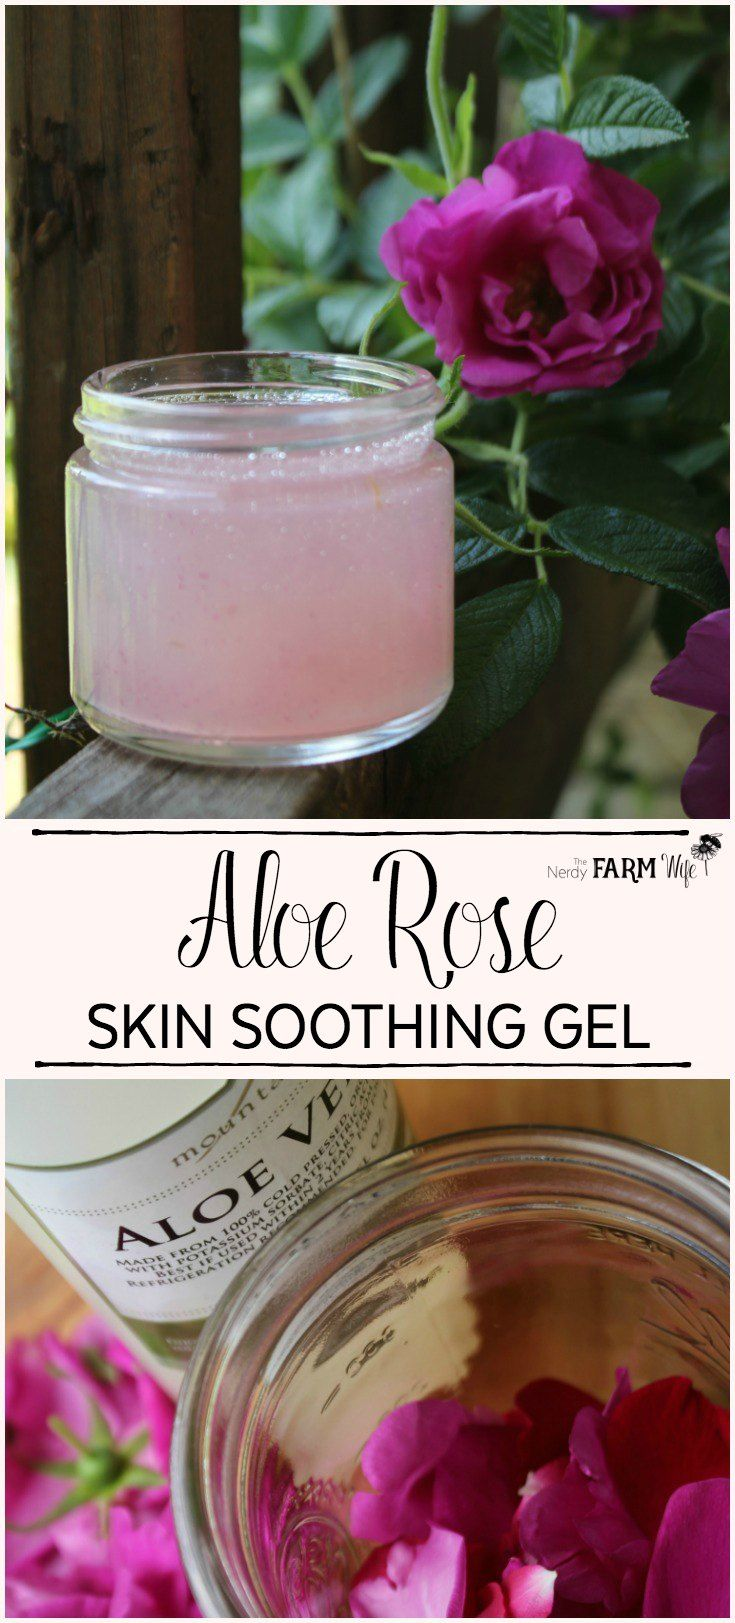 Aloe Rose Skin Soothing Gel - Aloe vera and fresh rose petals combine to make this soothing gel that's useful for sunburn, bug bites, rashes, dry skin, eczema, psoriasis, razor burn, minor cuts/scrapes and radiation burns.